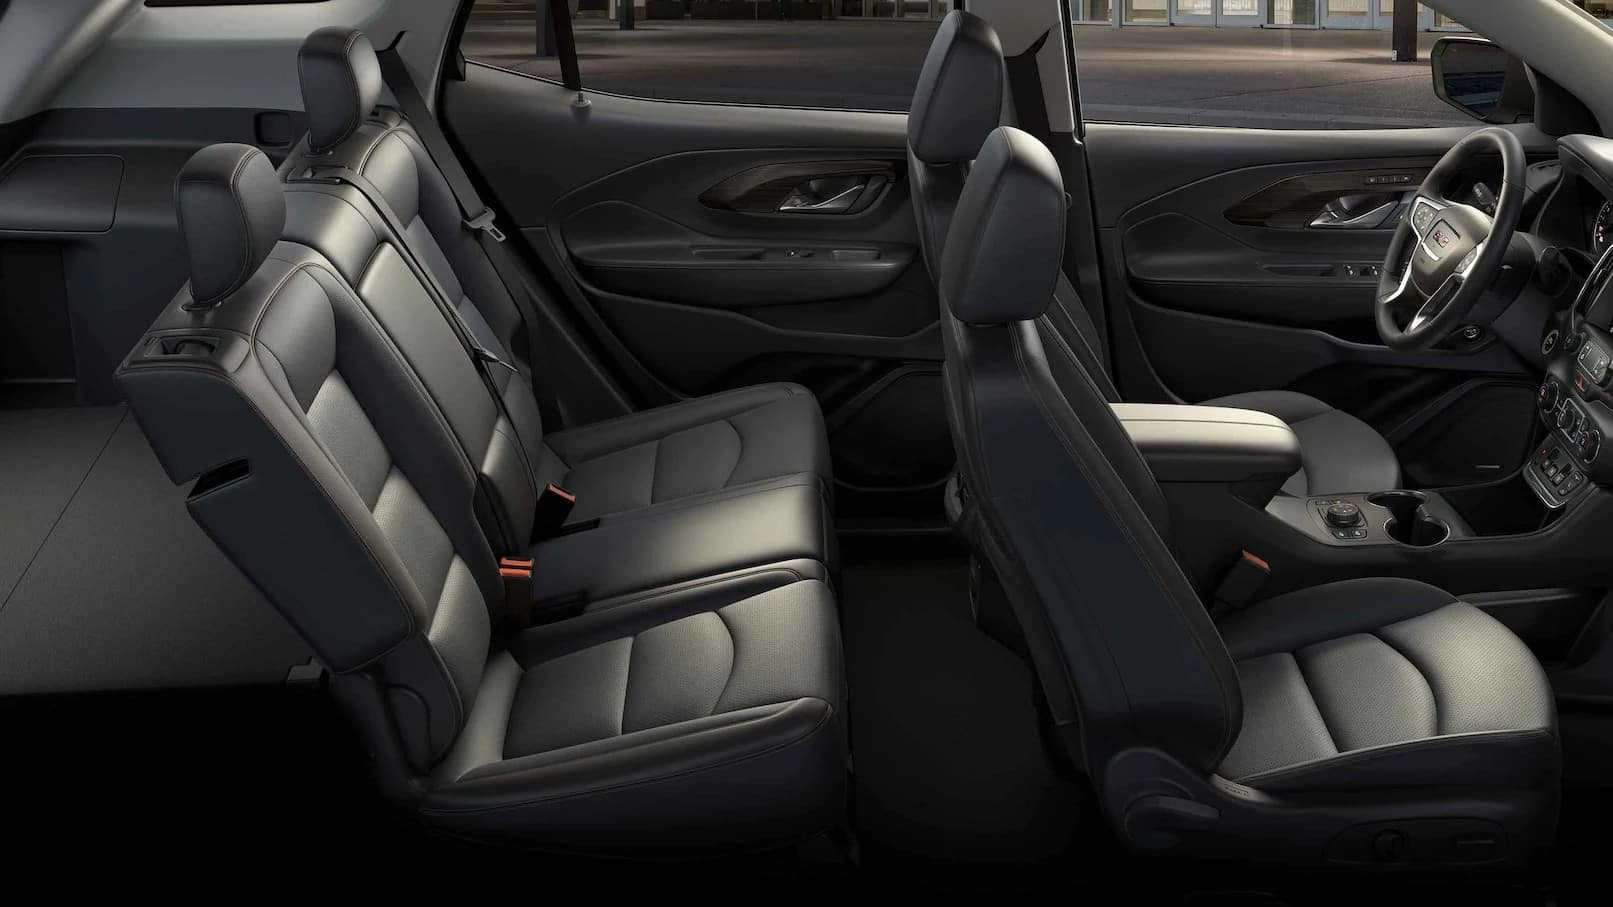 picture of gmc terrain black leather interior for sale in Hooksett New Hampshire